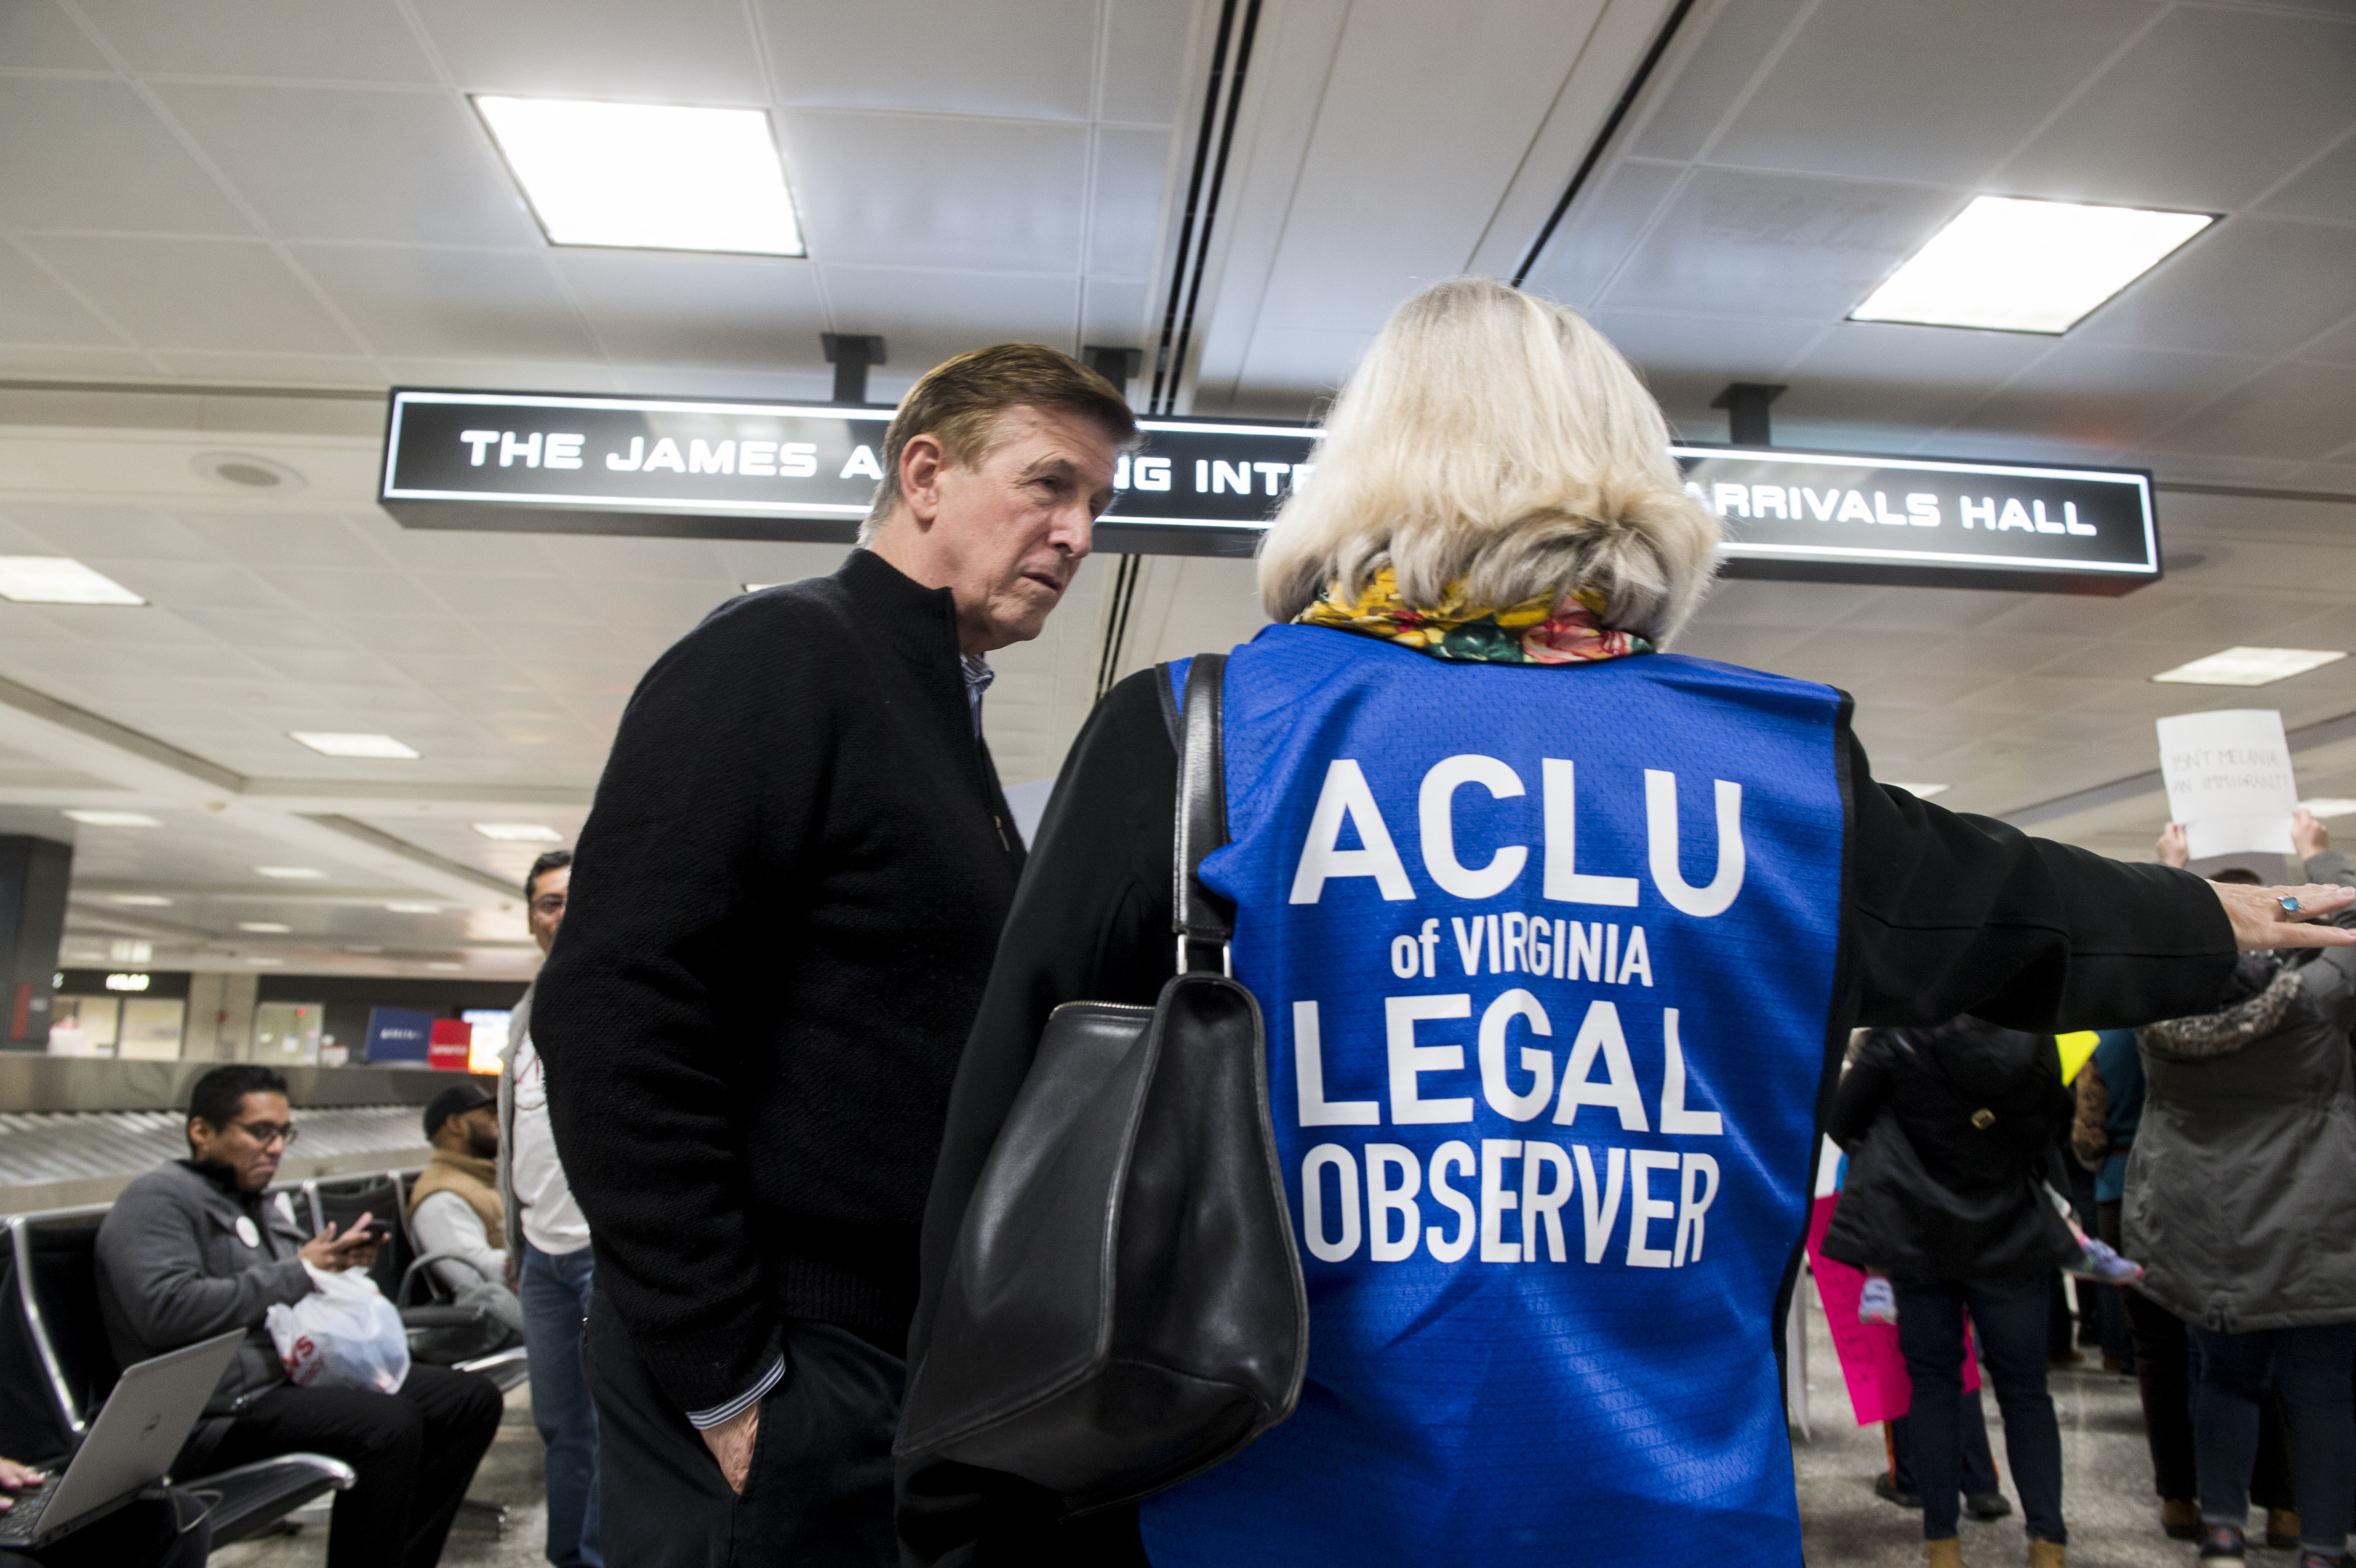 UNITED STATES - JANUARY 29: Rep. Don Beyer, D-Va., speaks with an ACLU legal observer during the protest at Dulles International Airport in Virginia on Sunday, Jan. 29, 2017. Protests erupted at airports around the country following President Trump's executive order restricting travel from several Islamic countries.